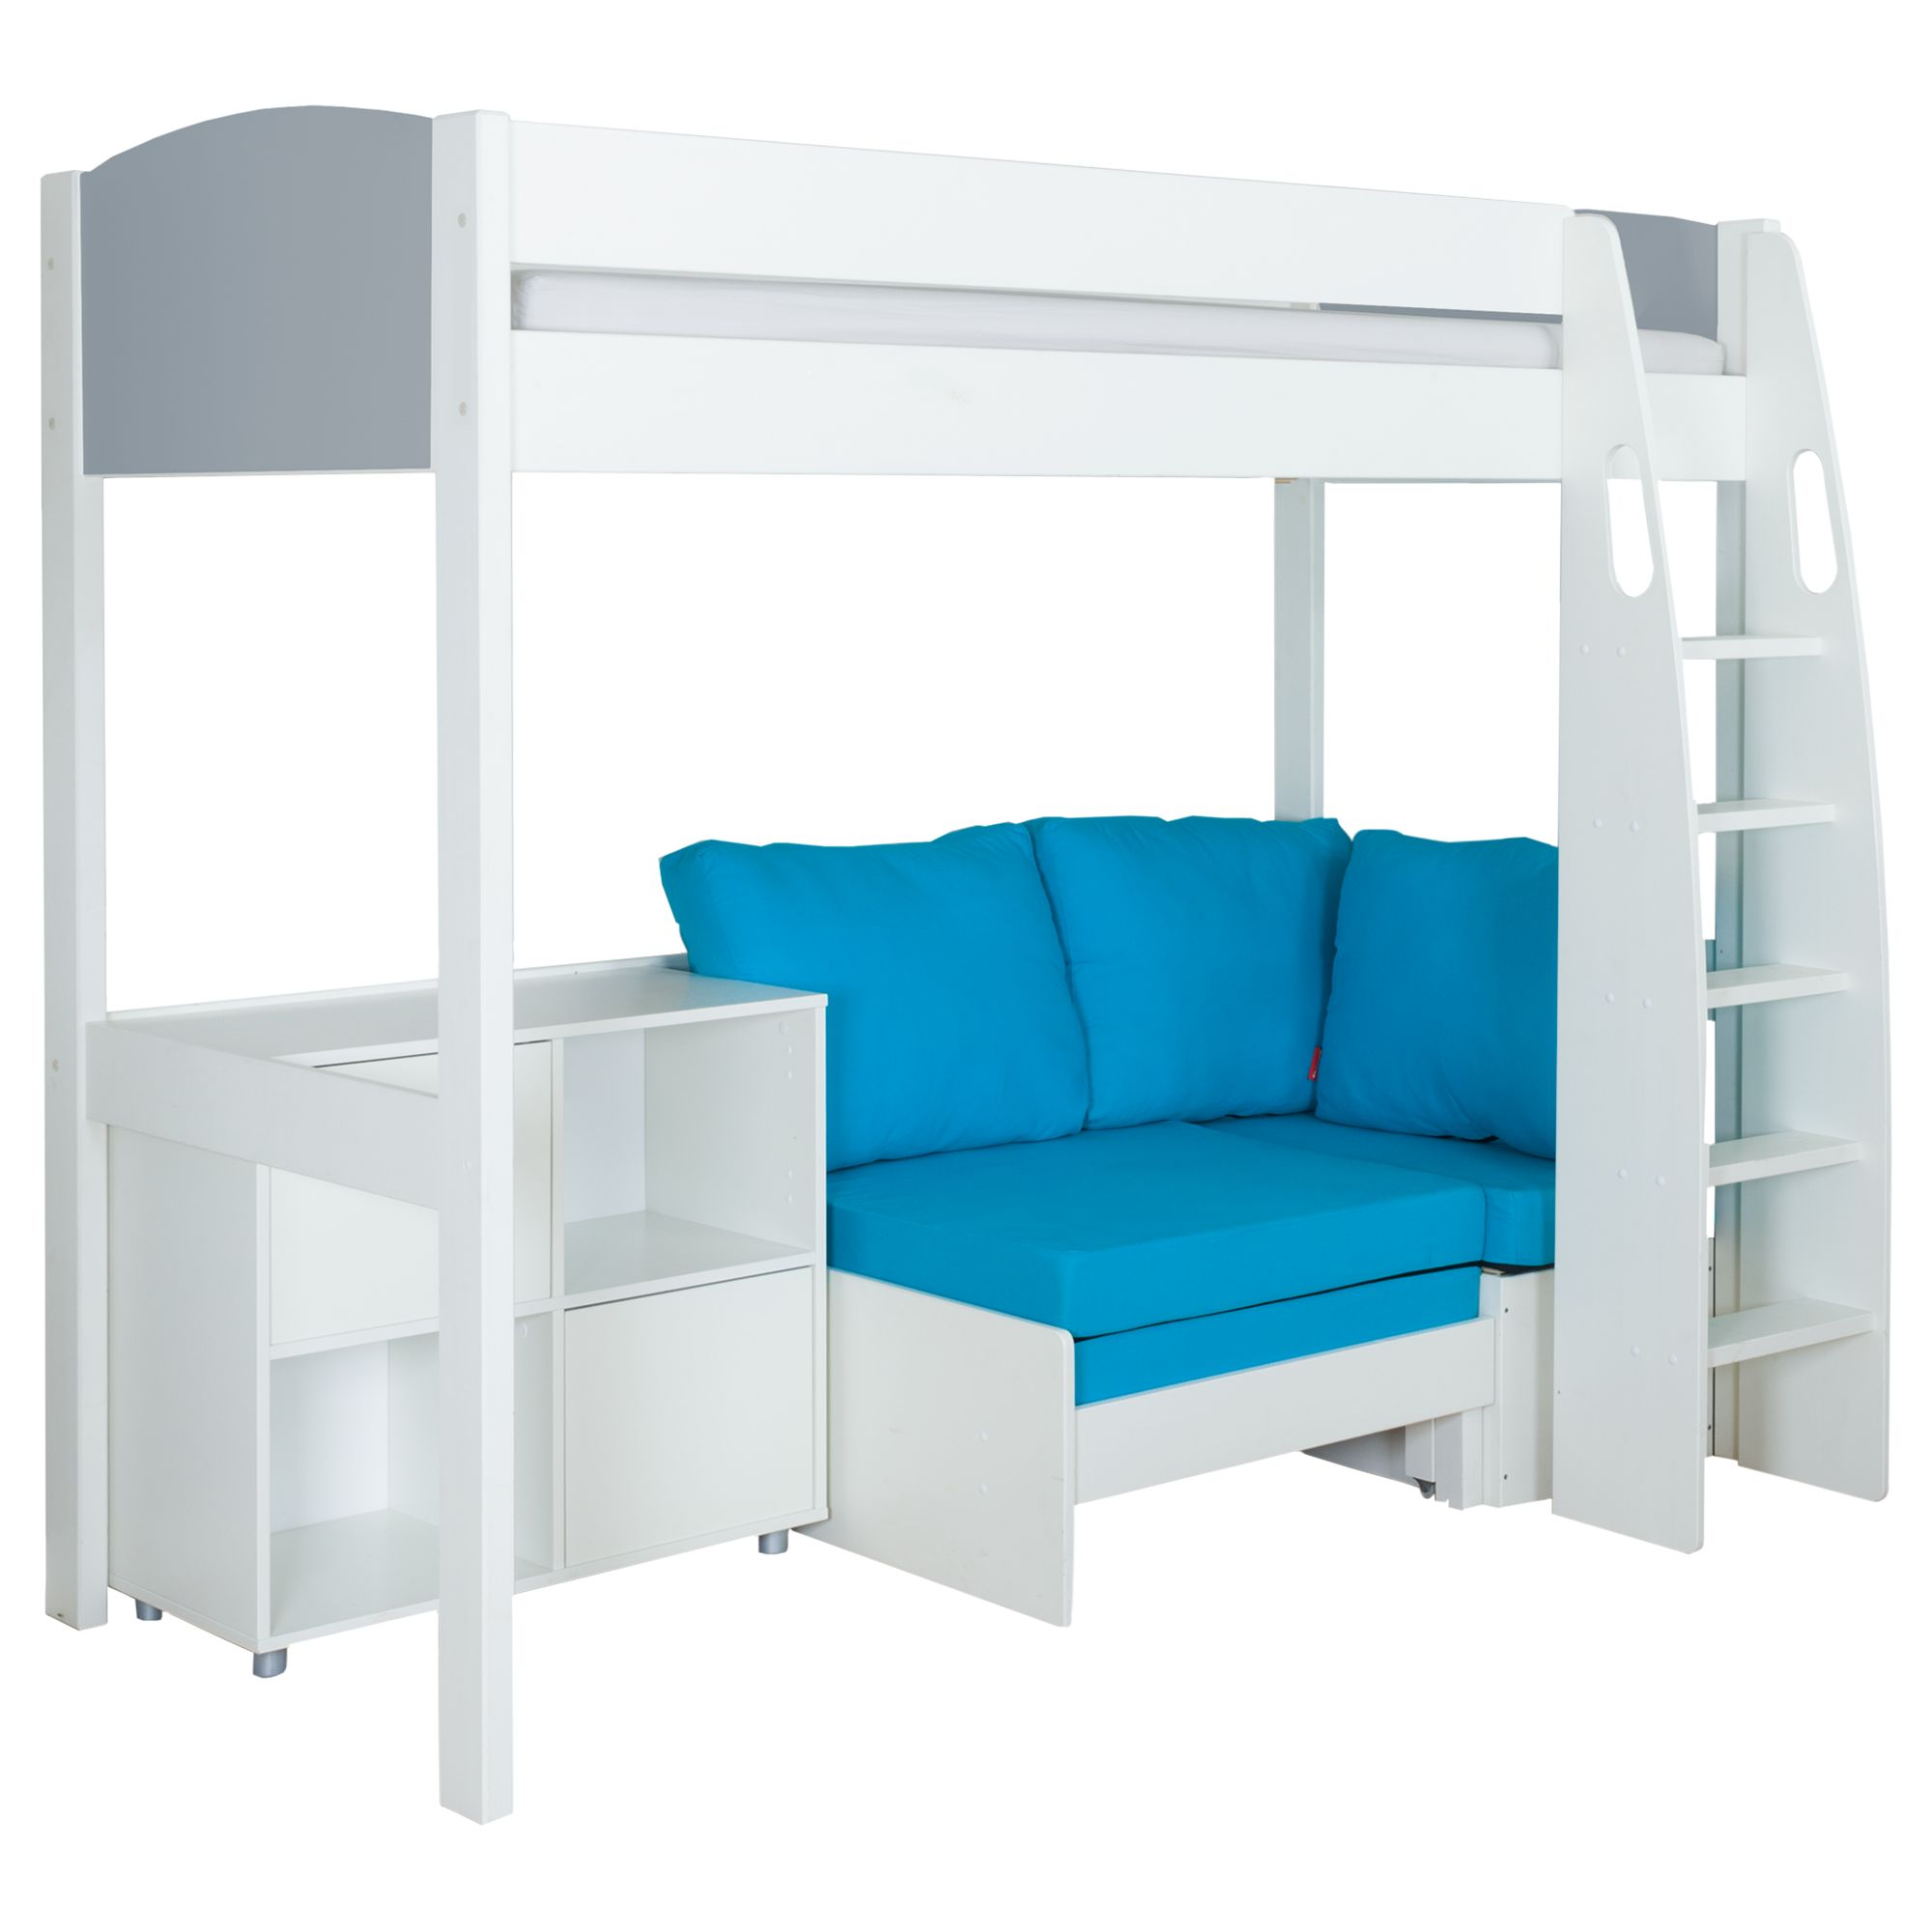 Stompa Stompa Uno S Plus High-Sleeper with Grey Headboard, Aqua Chair Bed and 2 Door Cube Unit